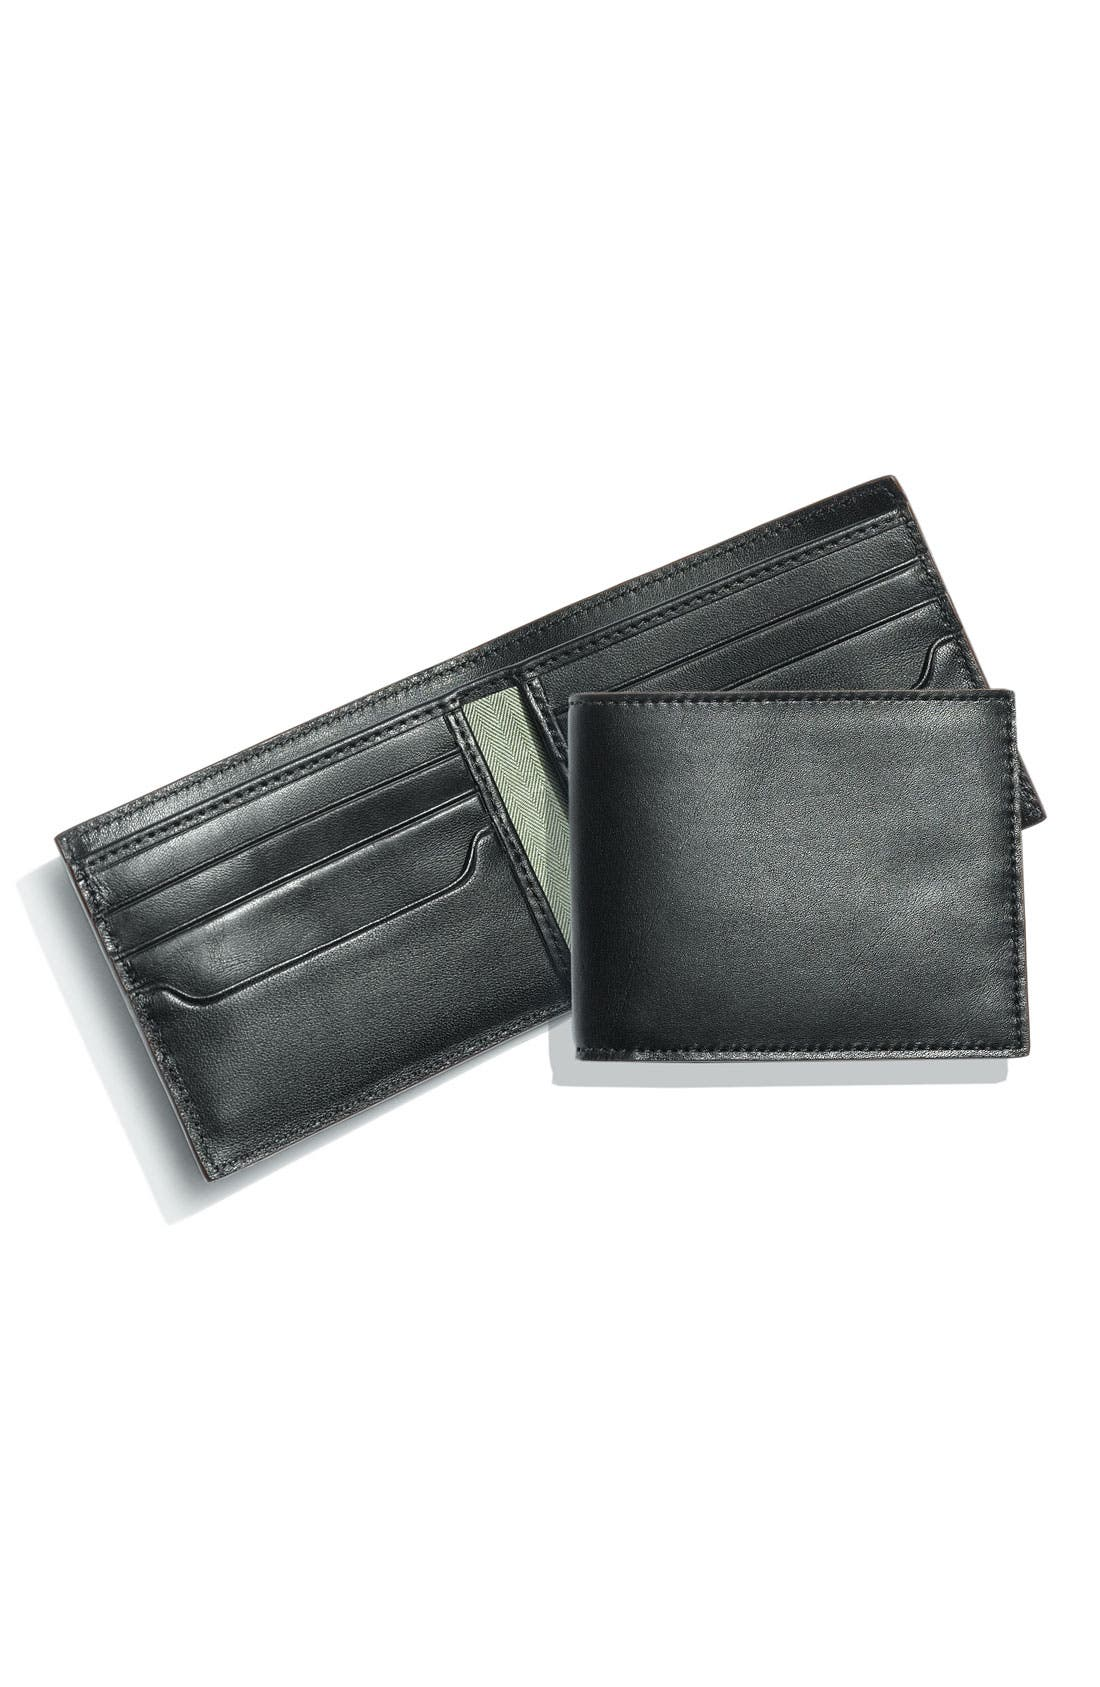 Alternate Image 1 Selected - Jack Spade Leather Billfold